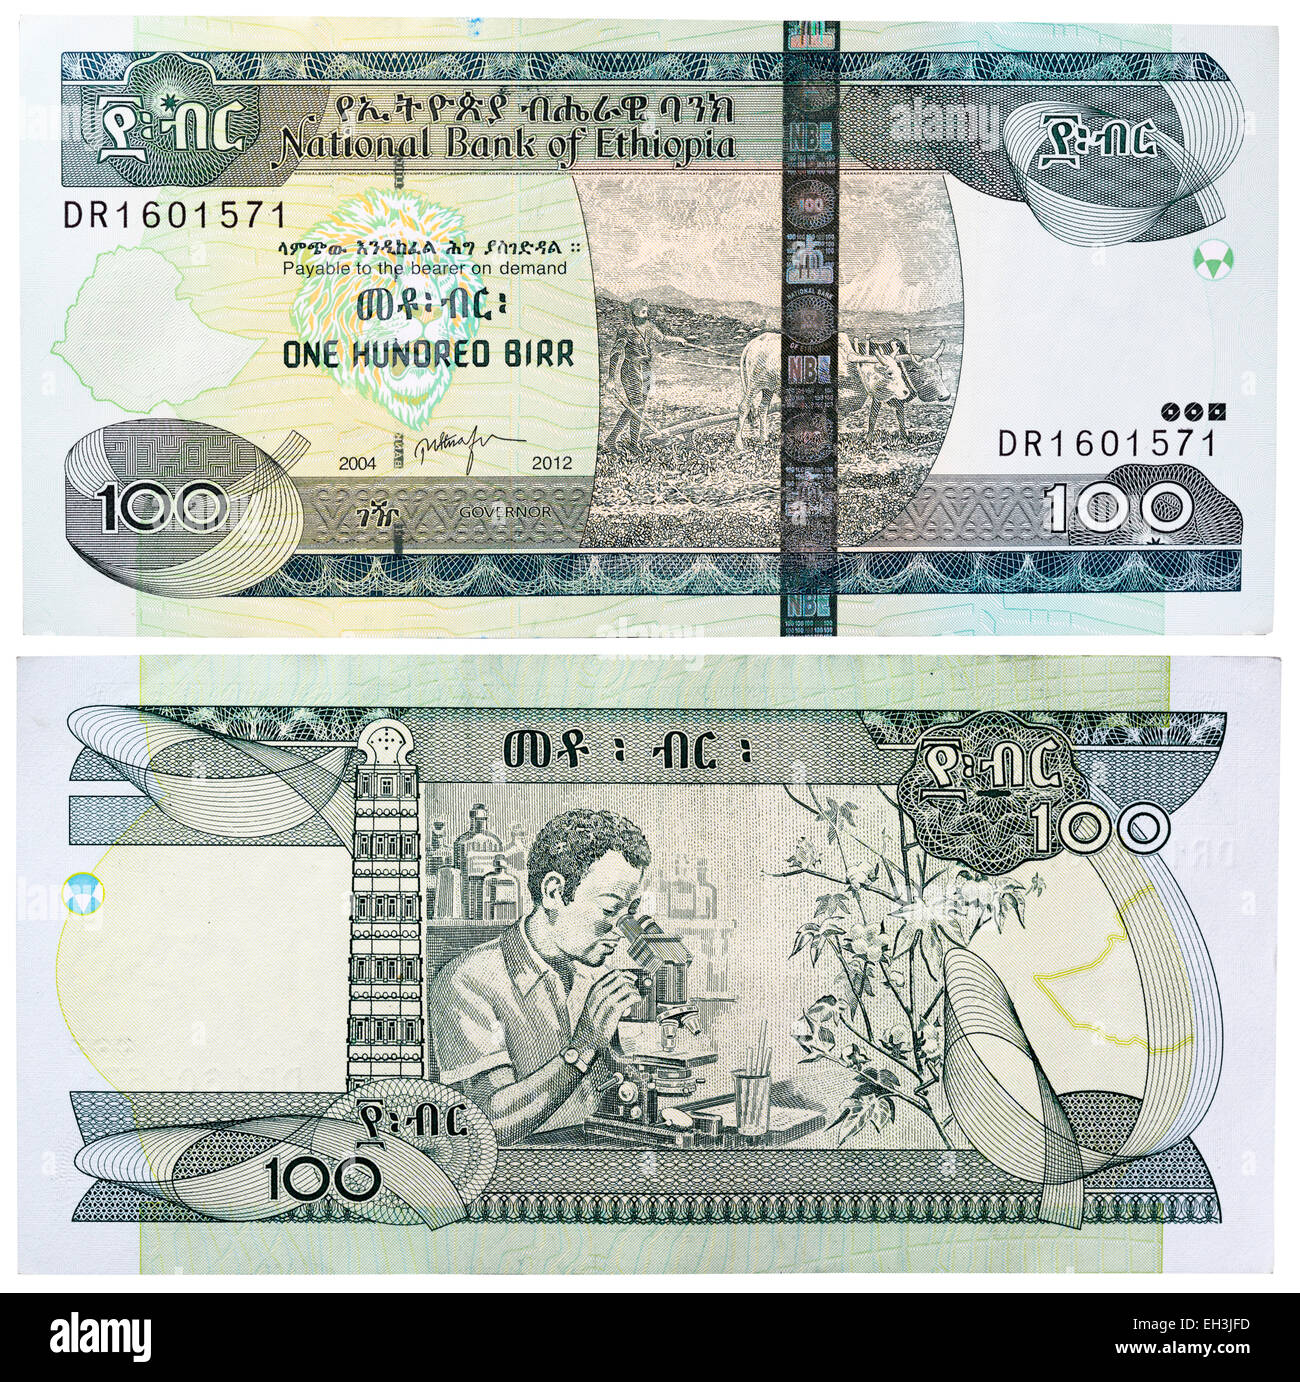 100 birr banknote, Farmer ploughing and man with a microscope in a laboratory, Ethiopia, 2012 - Stock Image